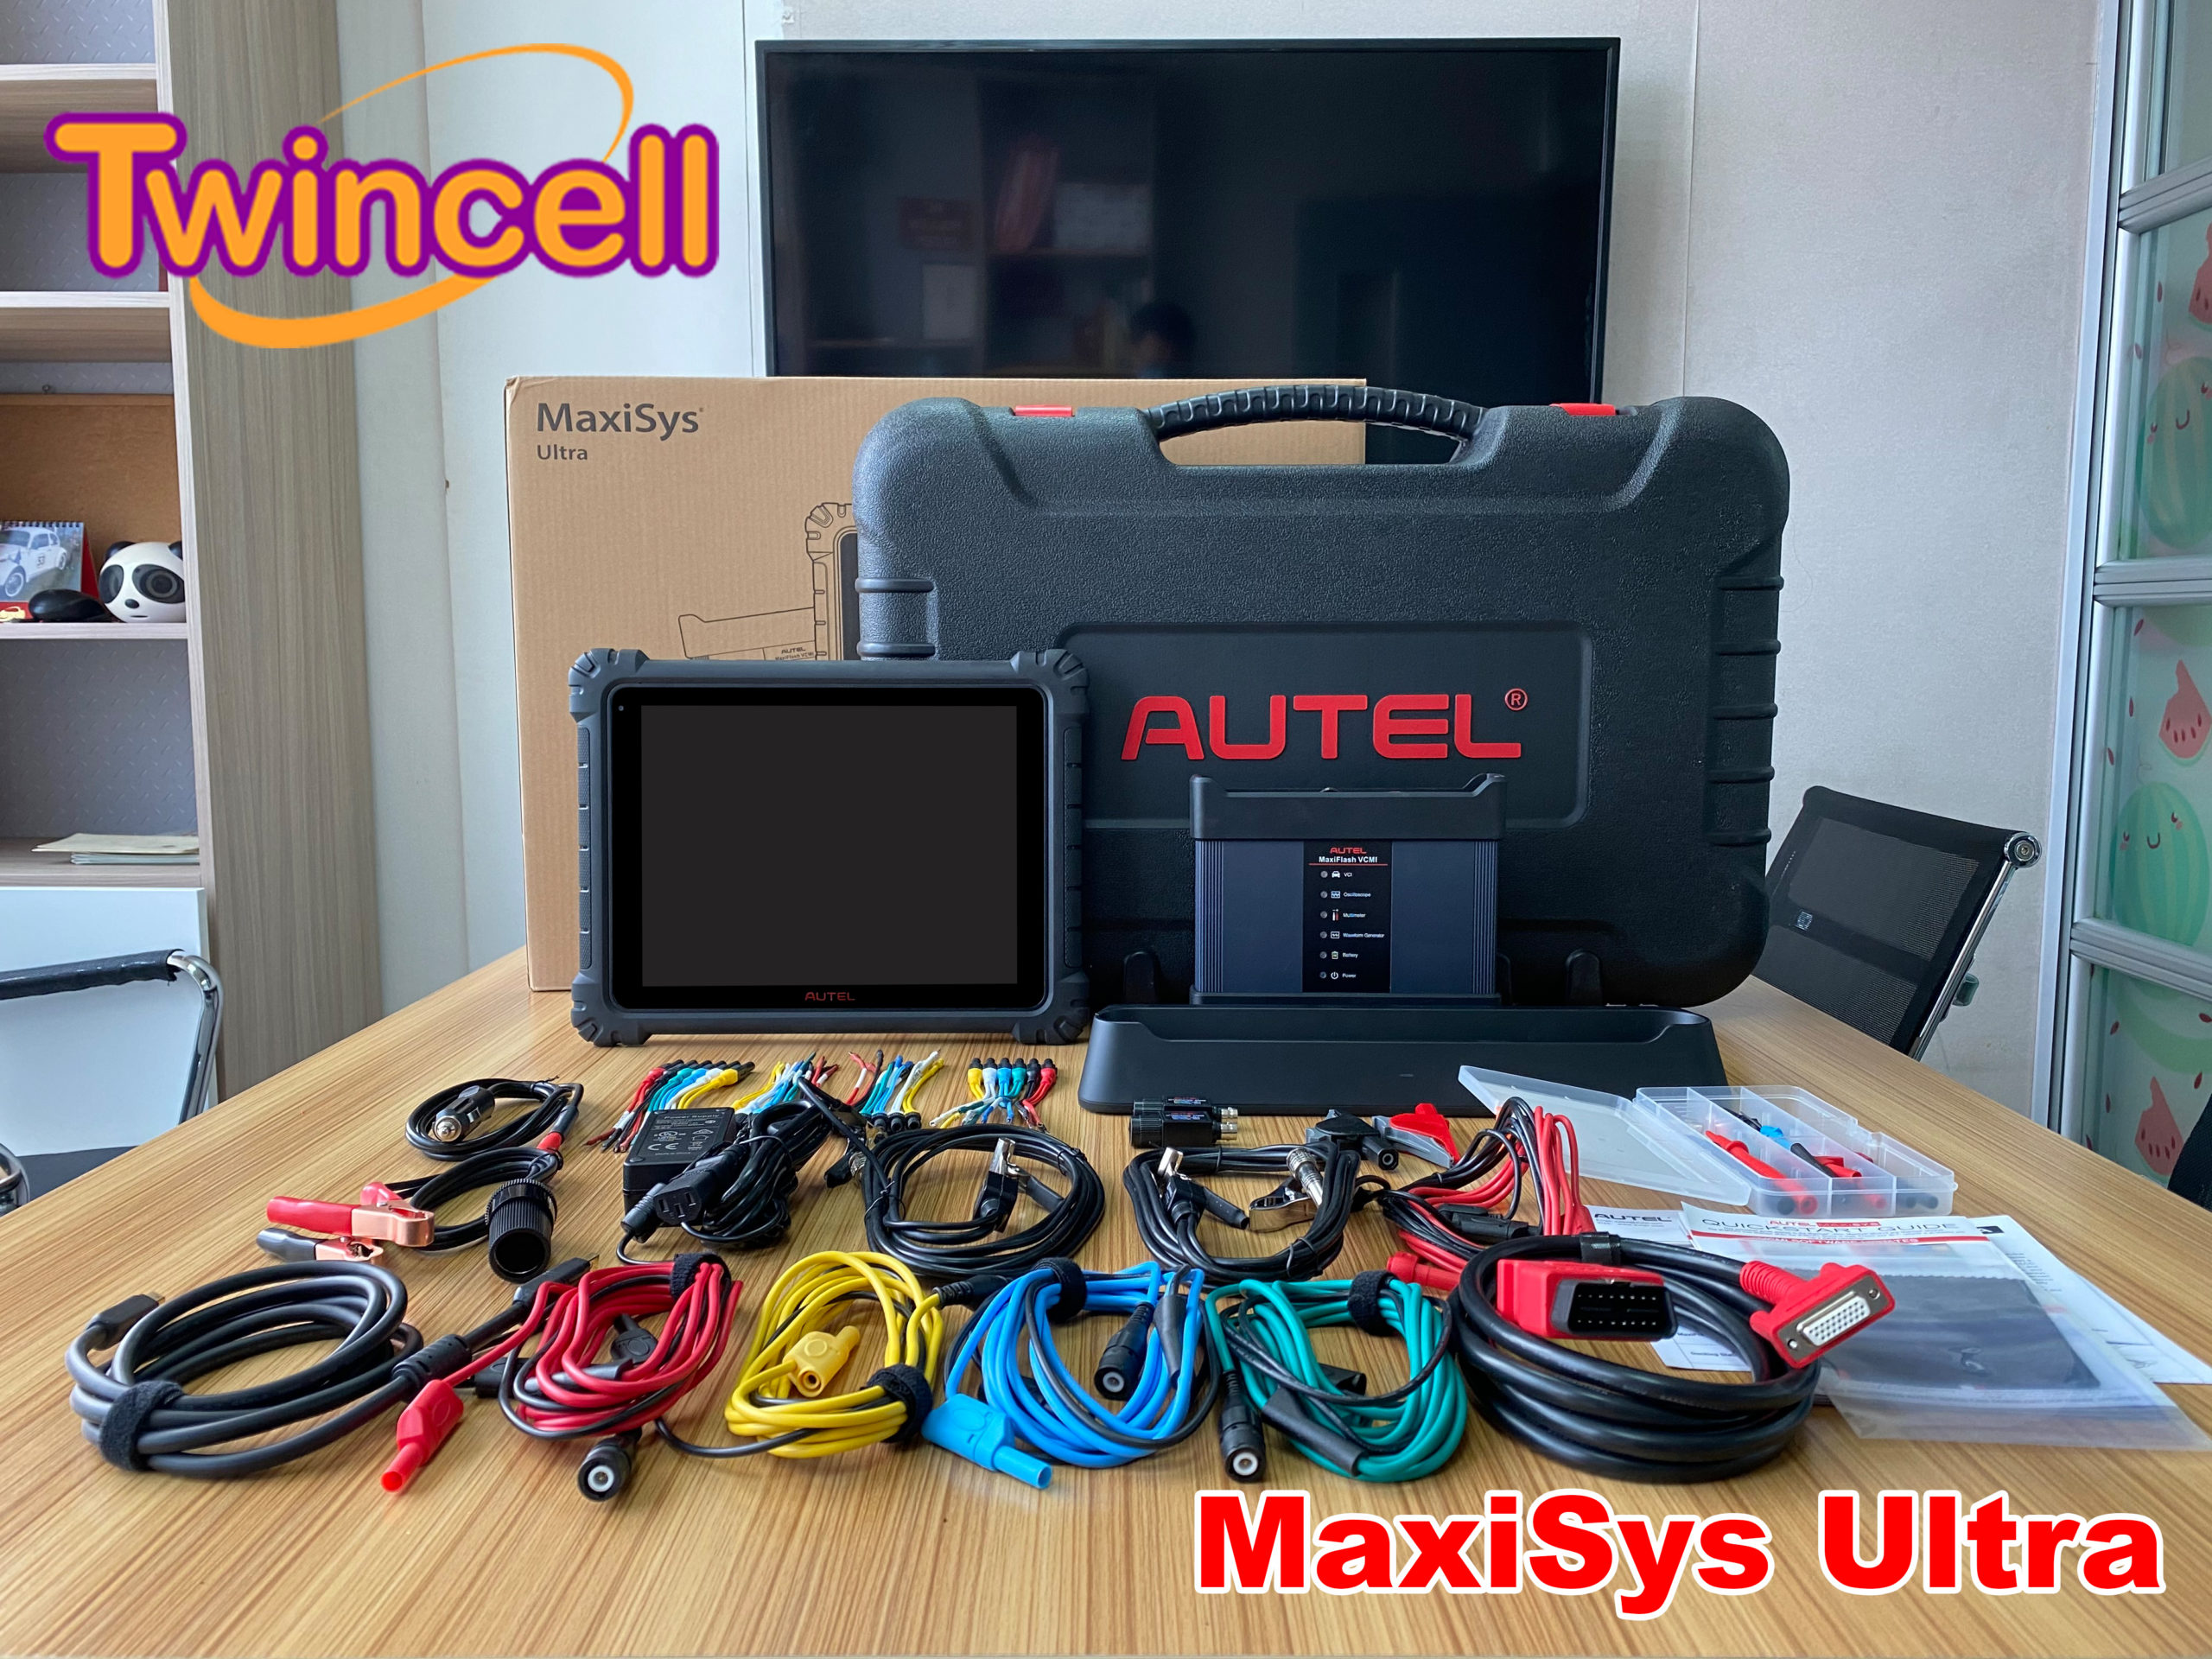 Autel MaxiSys Ultra – Twincell